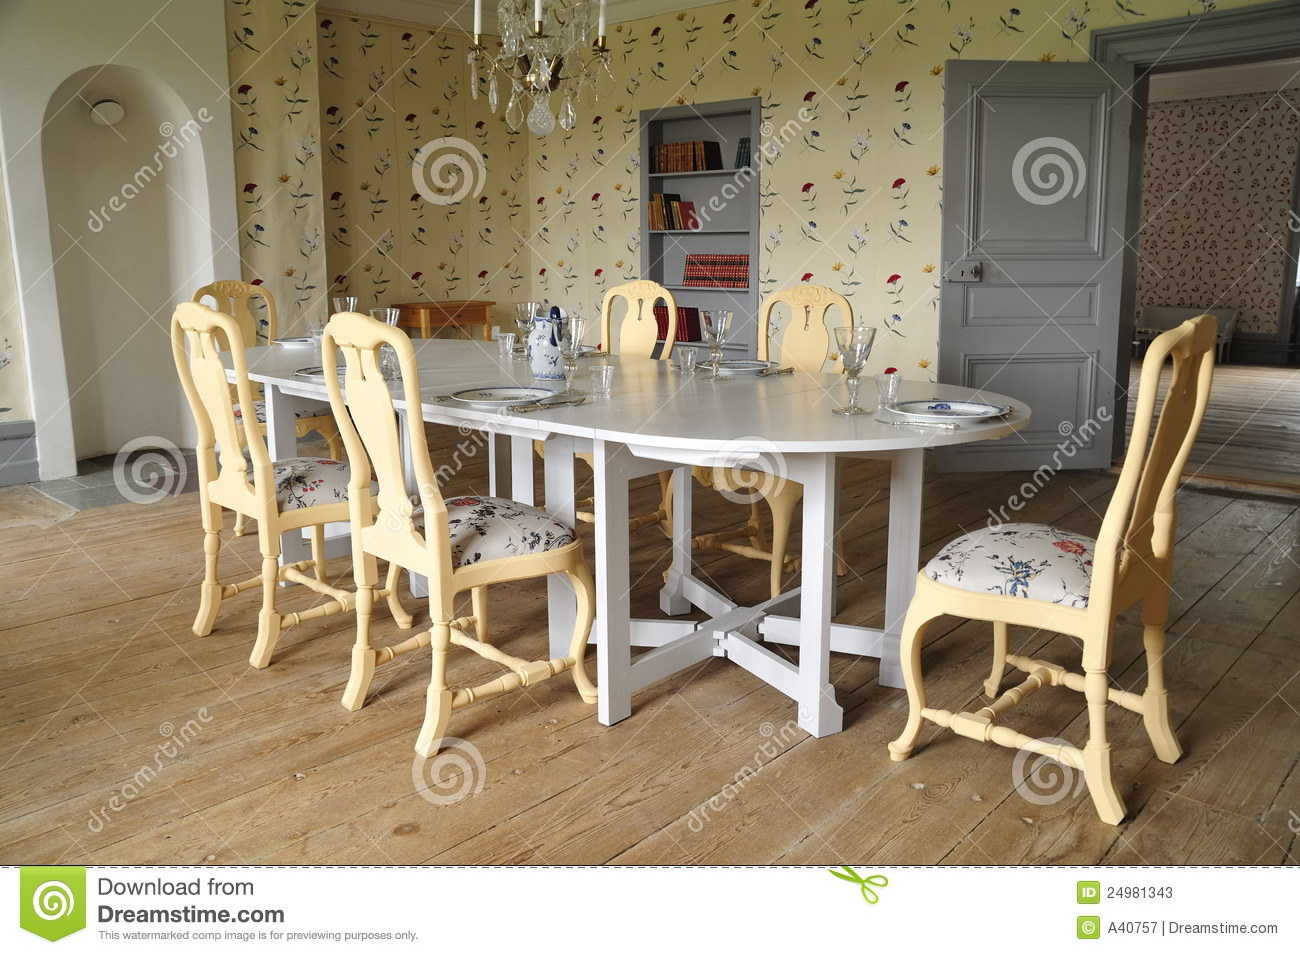 Vintage Dining Room Stock Photos - Image: 24981343